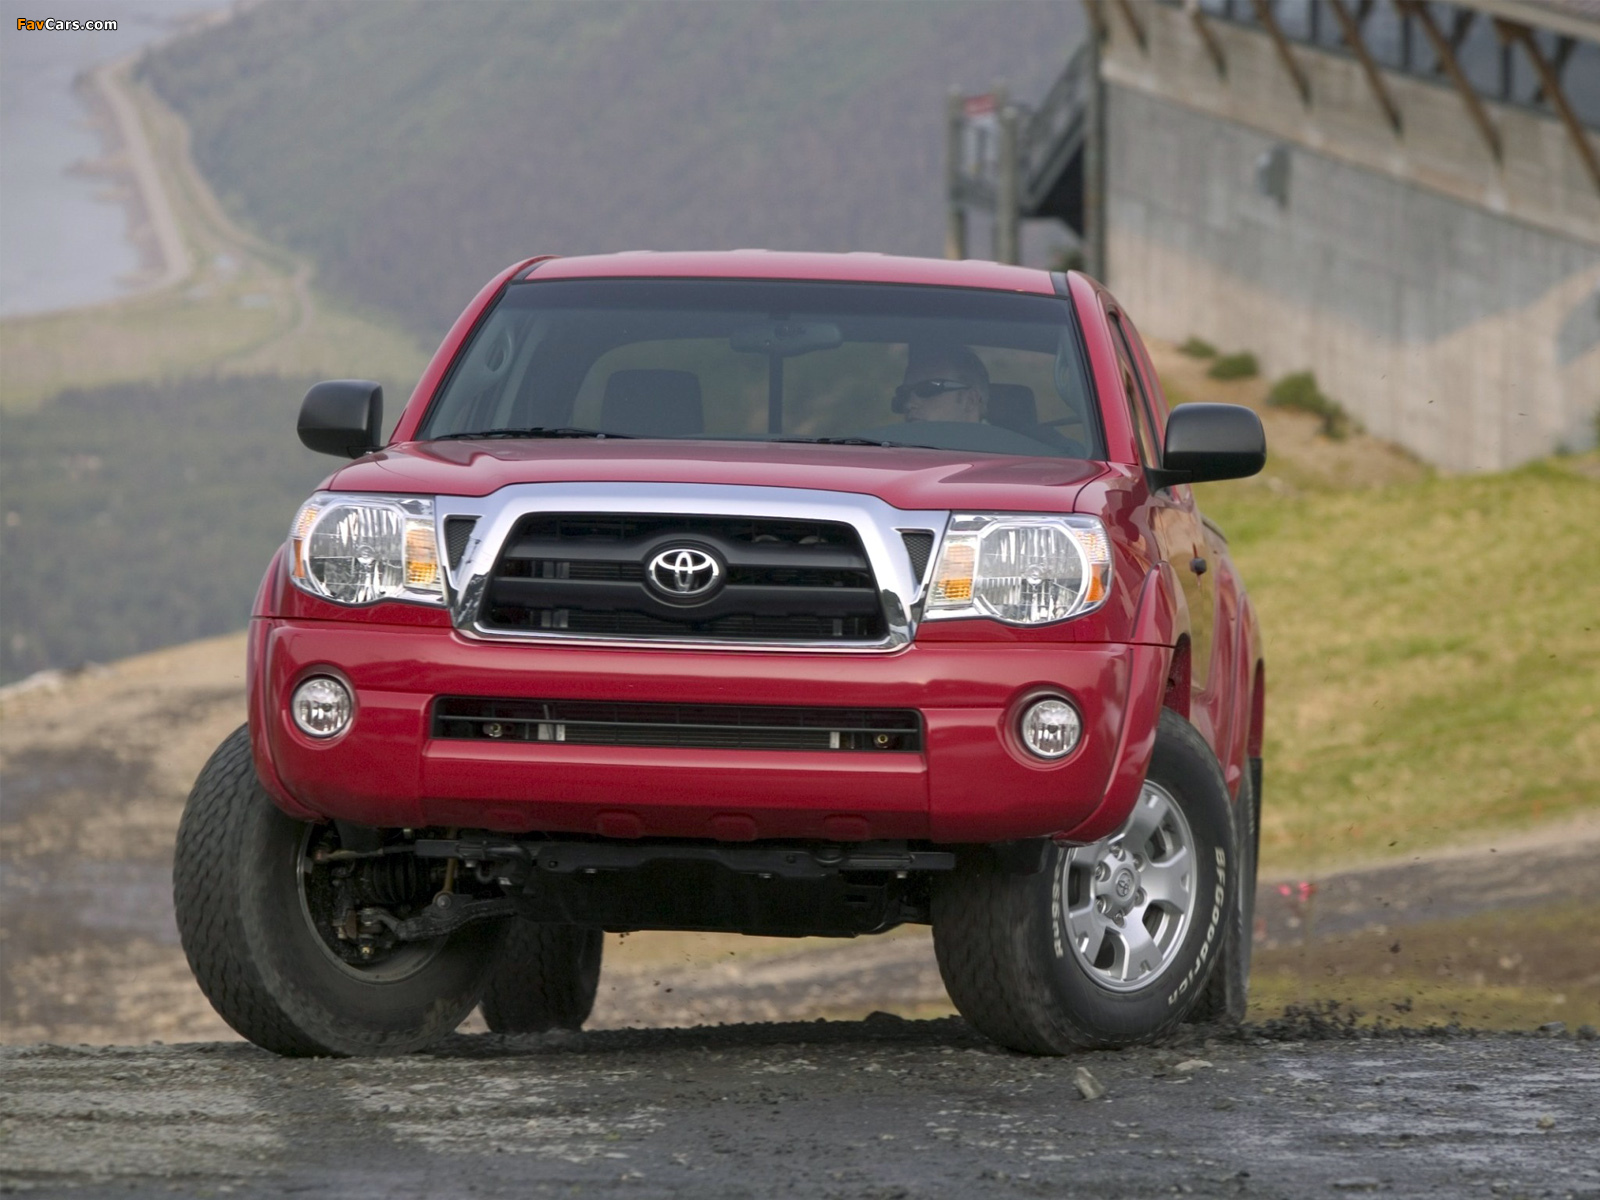 Wallpapers of TRD Toyota Tacoma Access Cab Off Road Edition 200512 1600x1200